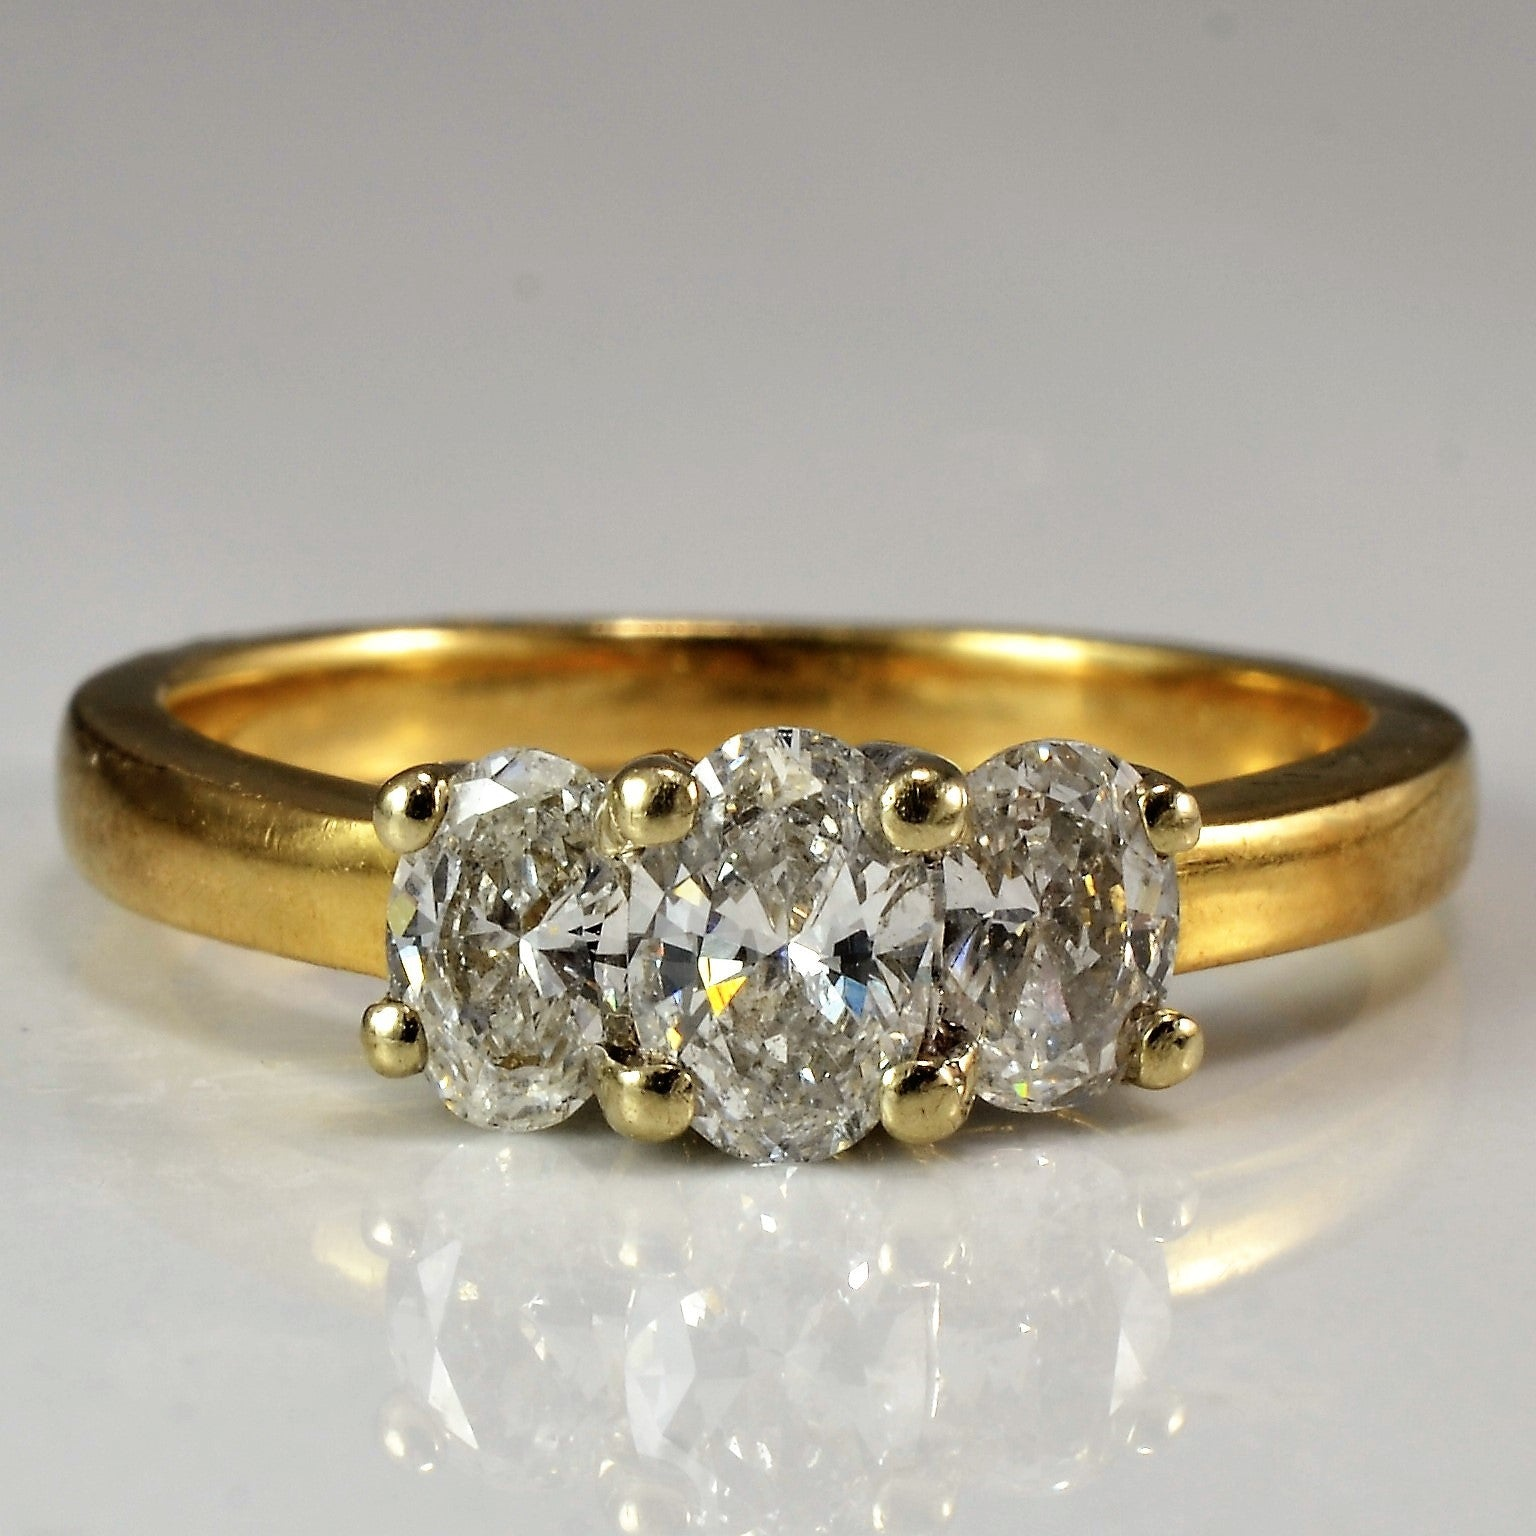 Oval Cut Three Stone Engagement Ring | 0.66 ctw, SZ 5.75 |